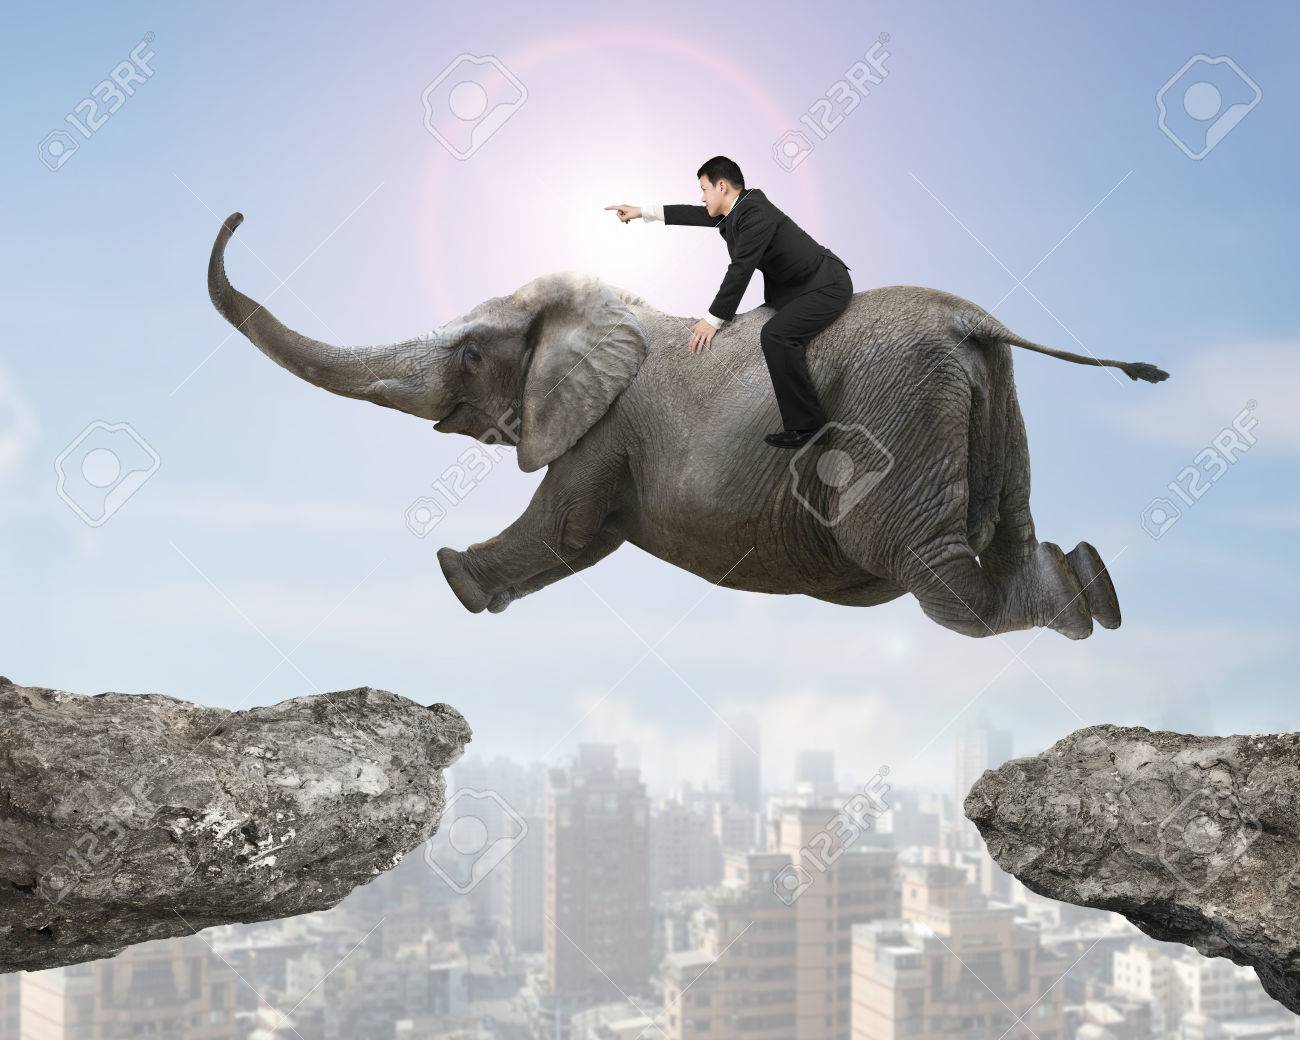 Man with pointing finger gesture riding elephant flying over two cliffs, with sunny sky cityscape background. - 50341600